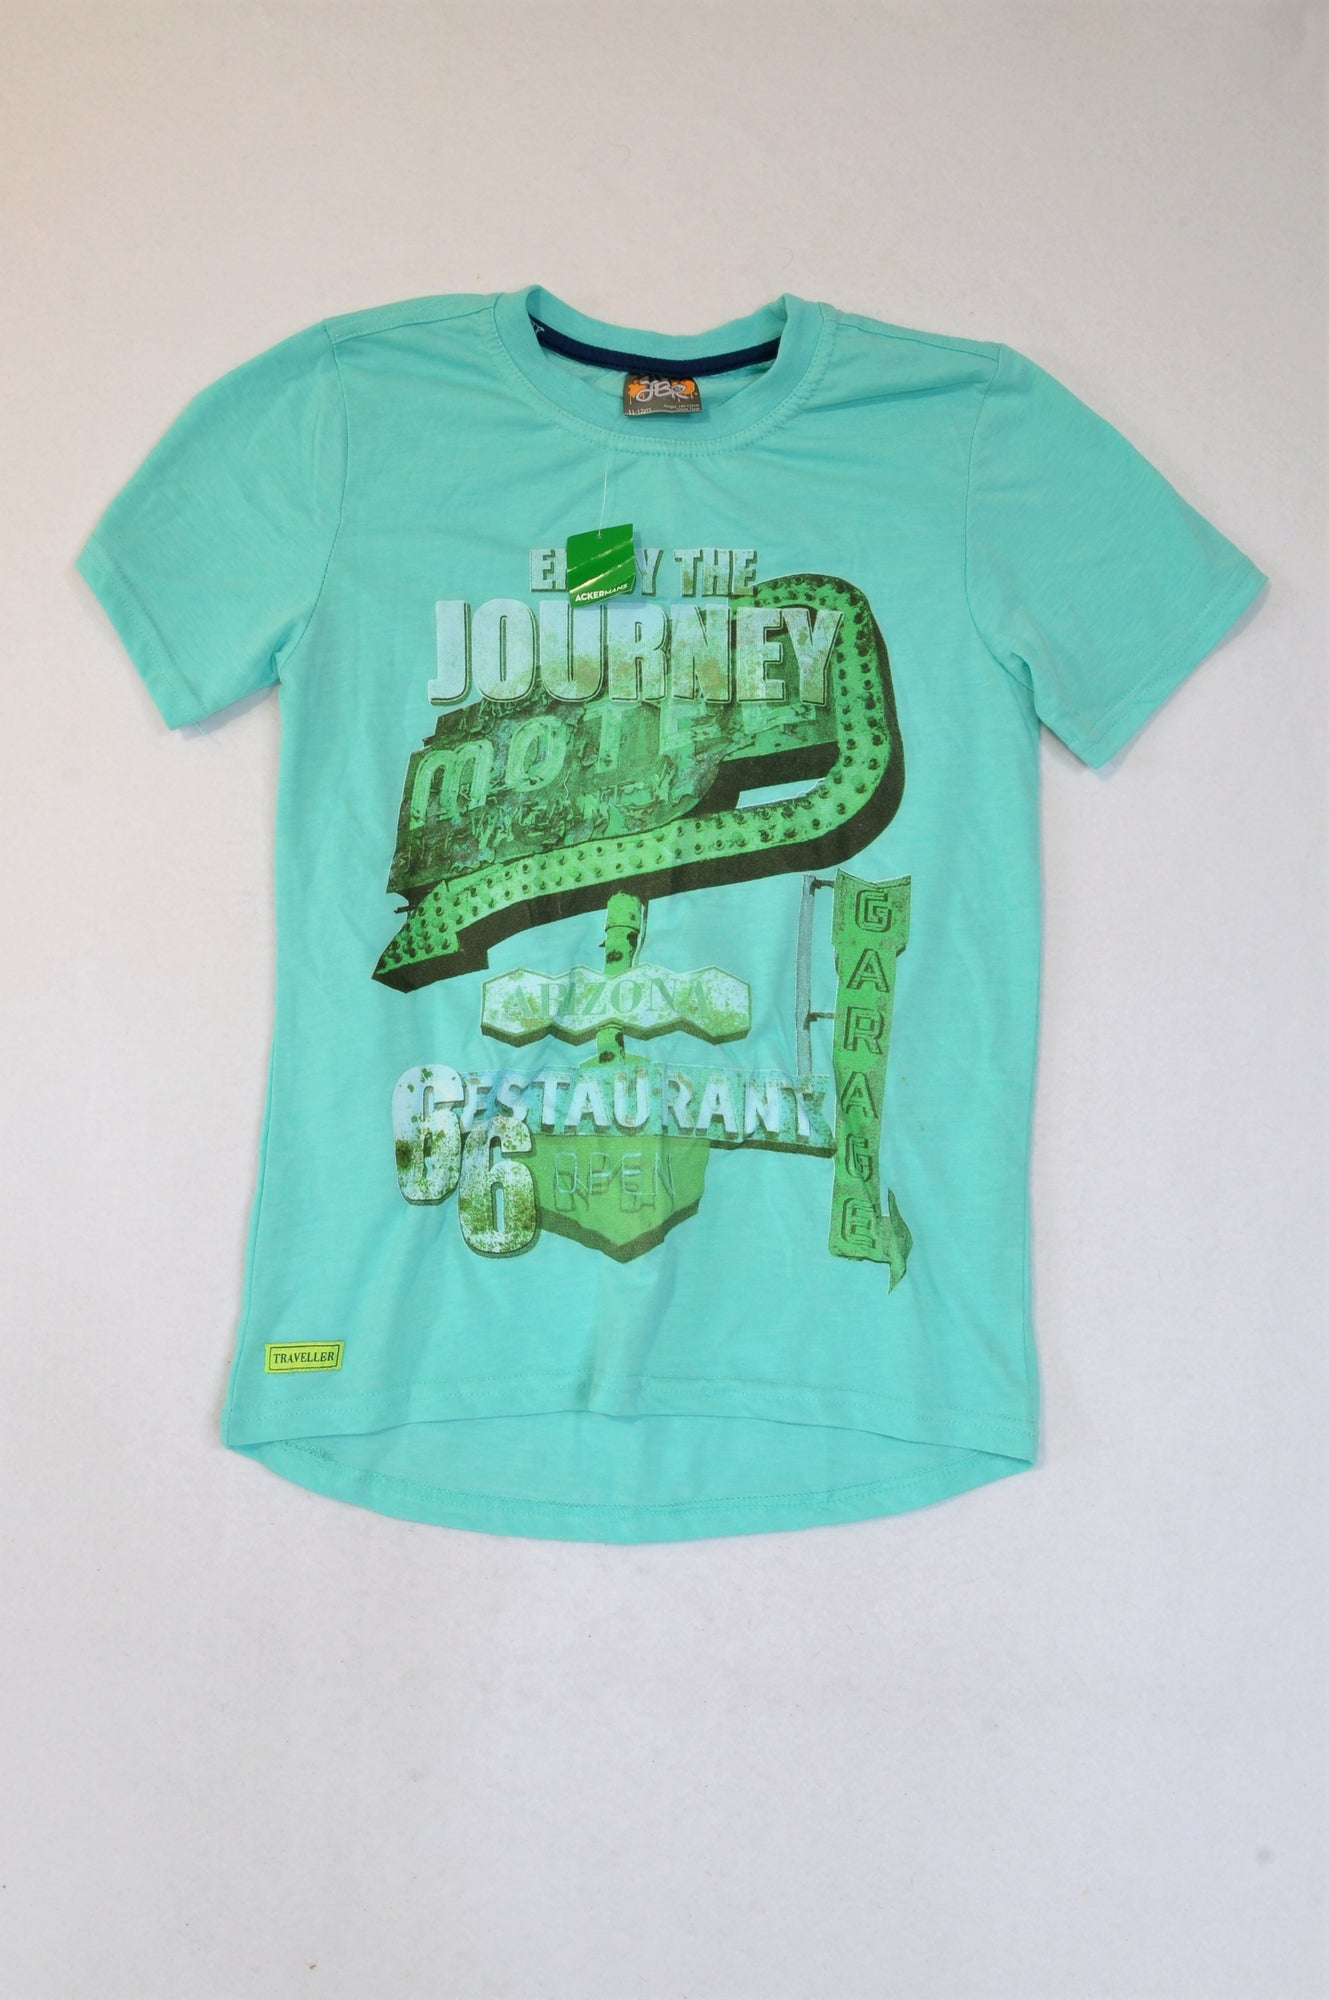 New JBR Aqua Green Journey T-shirt Boys 5-6 years